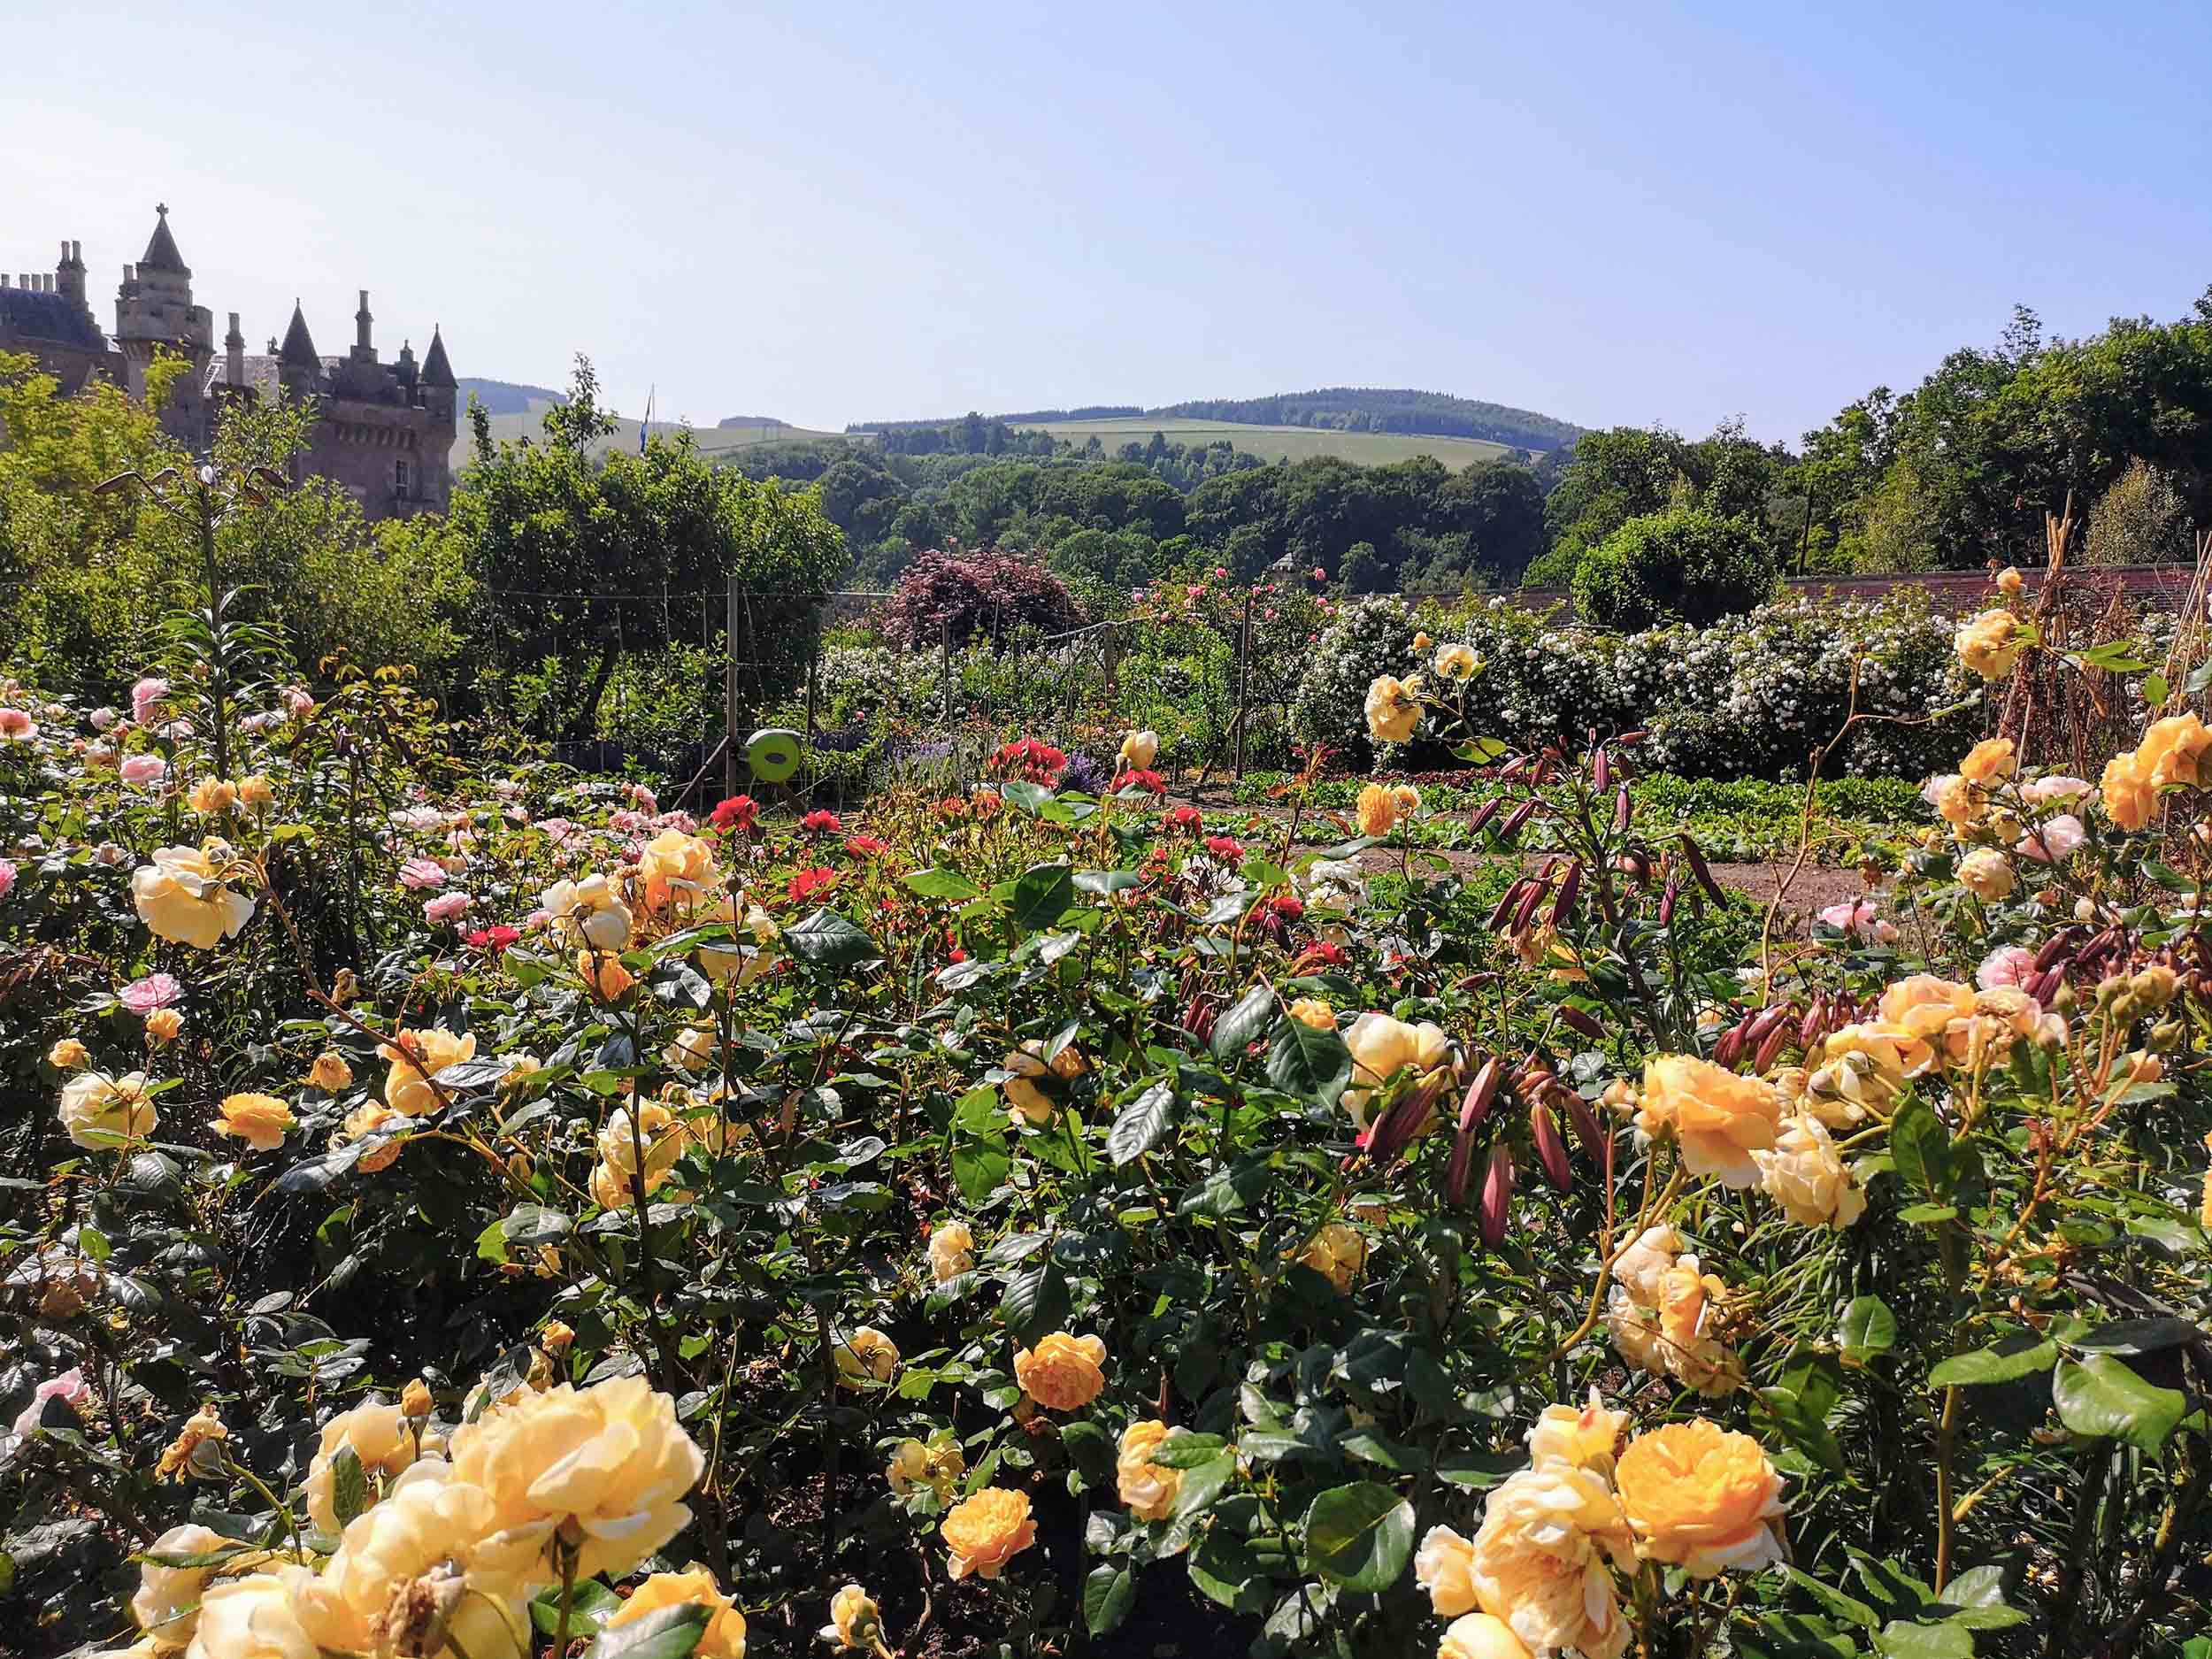 Abbotsford rose gardens and house.jpg